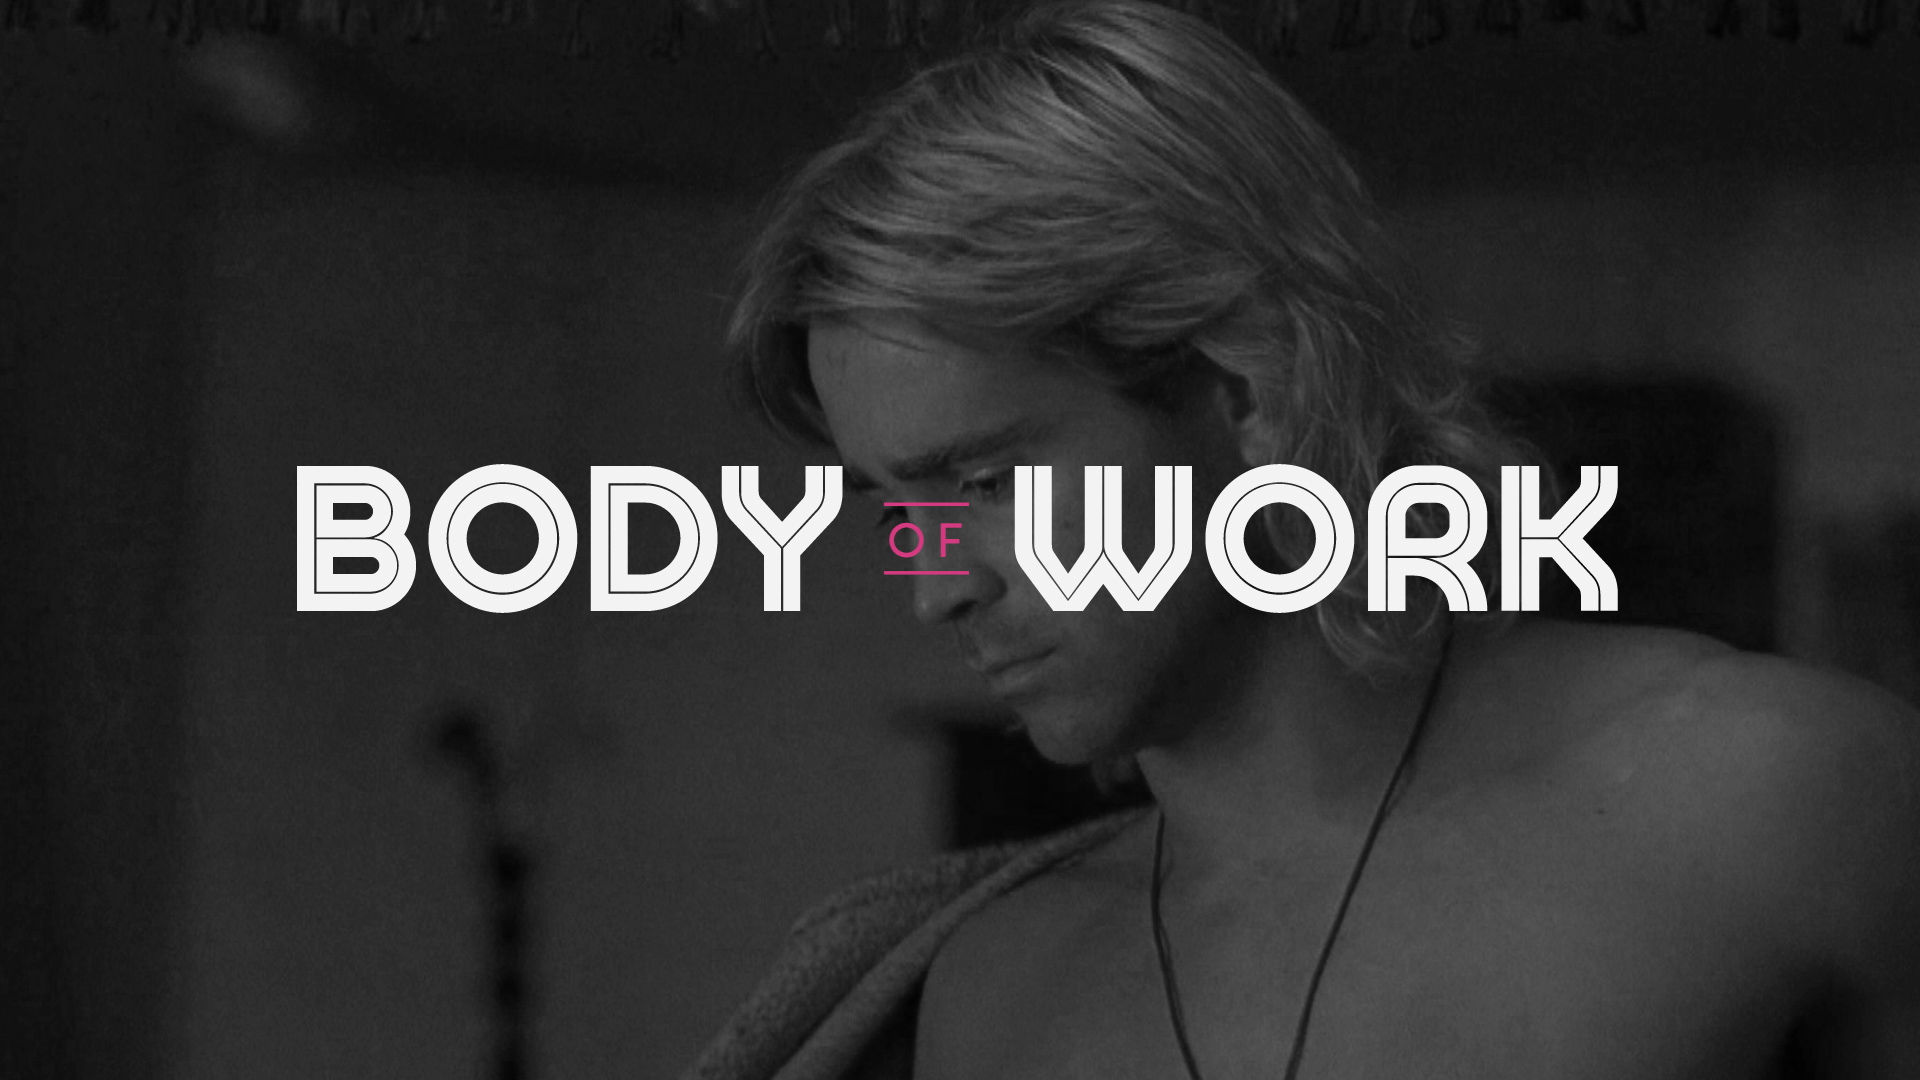 Body of Work: Colin Farrell